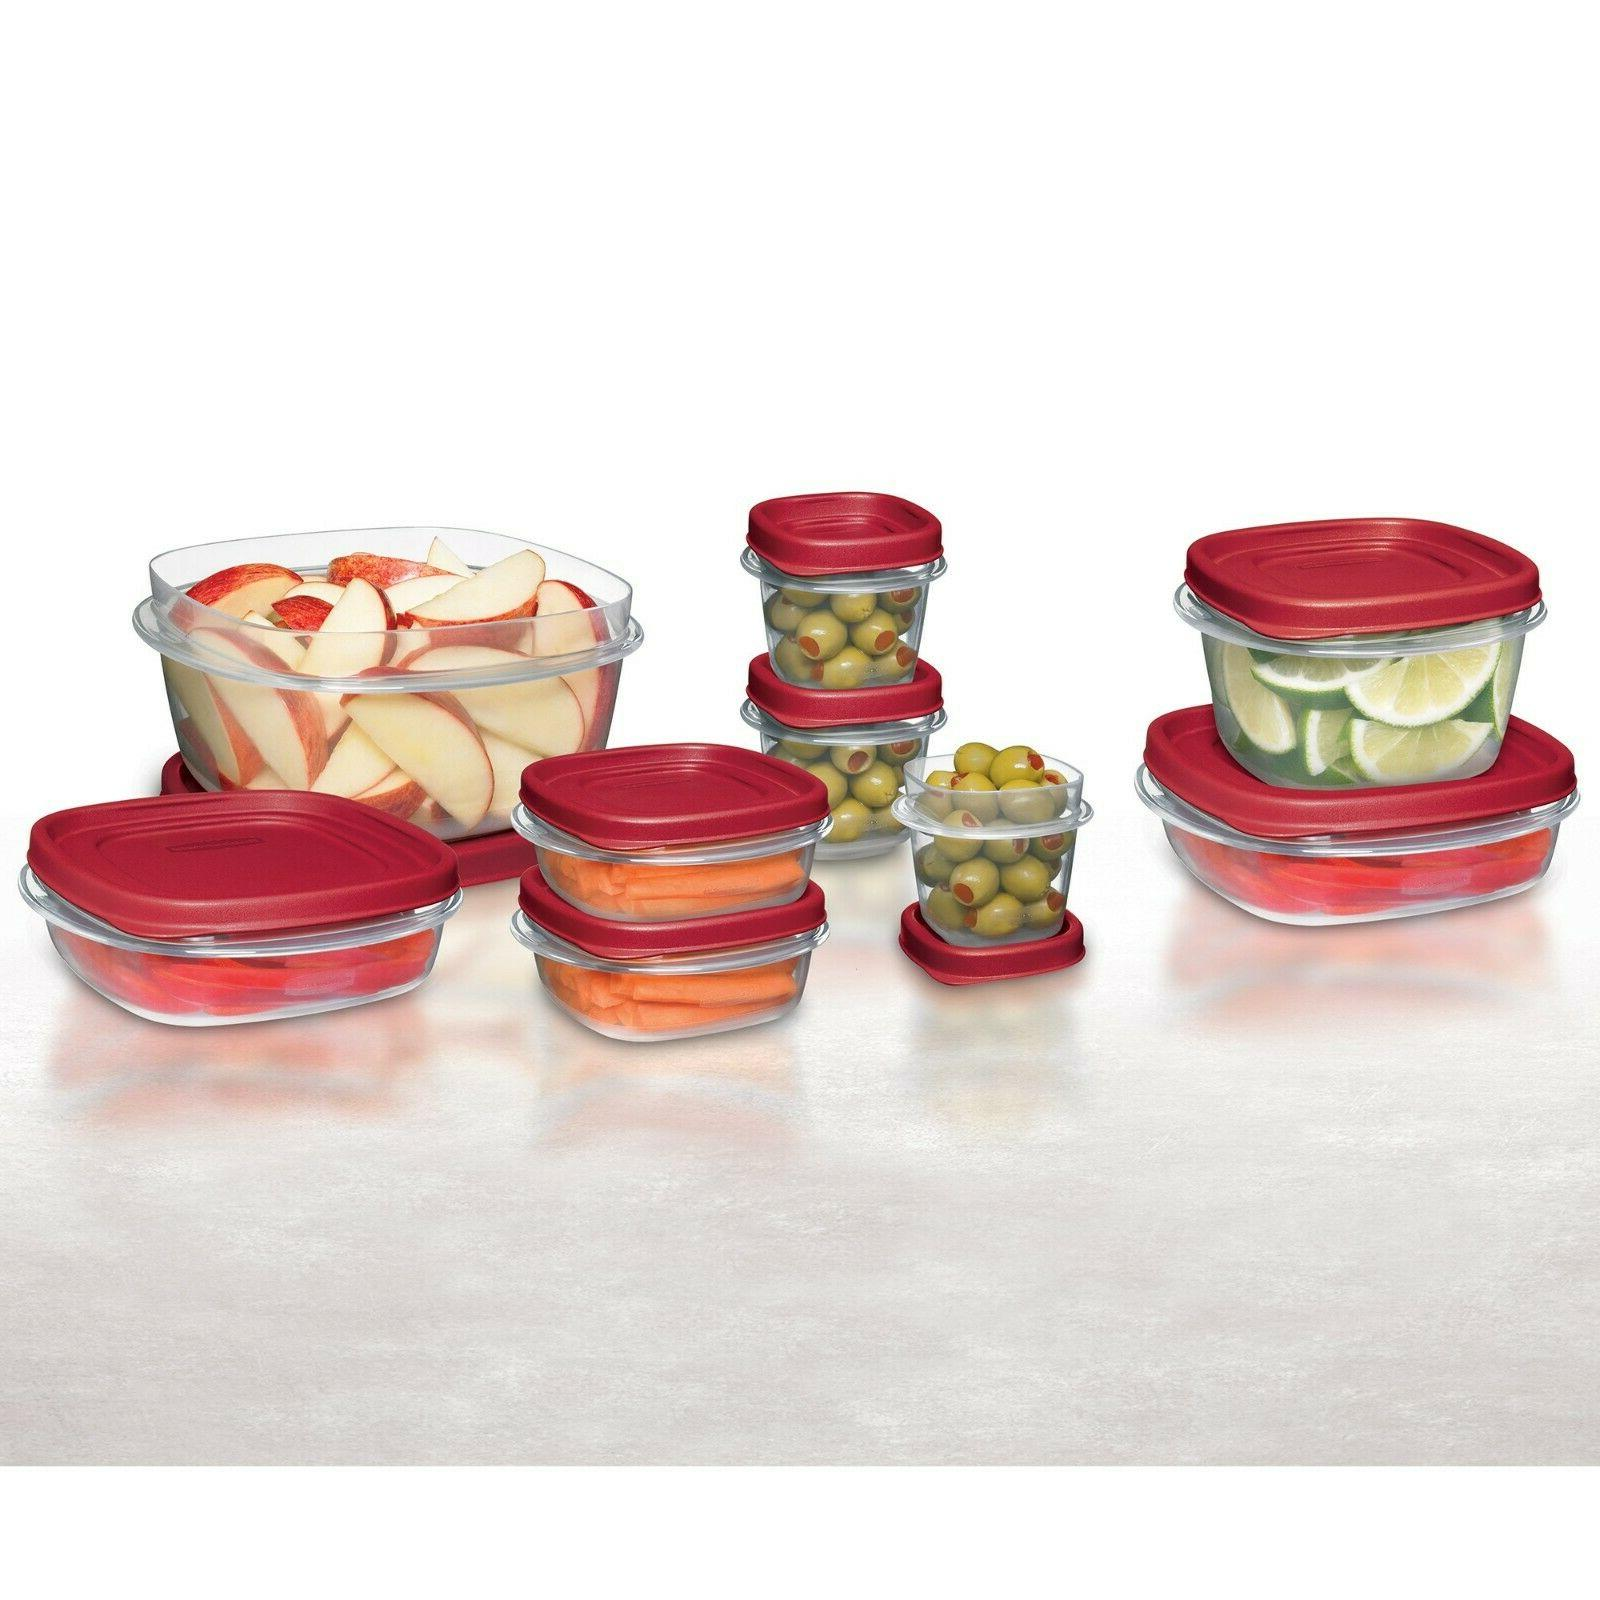 Rubbermaid Food with Easy Lids, 24-Piece Set